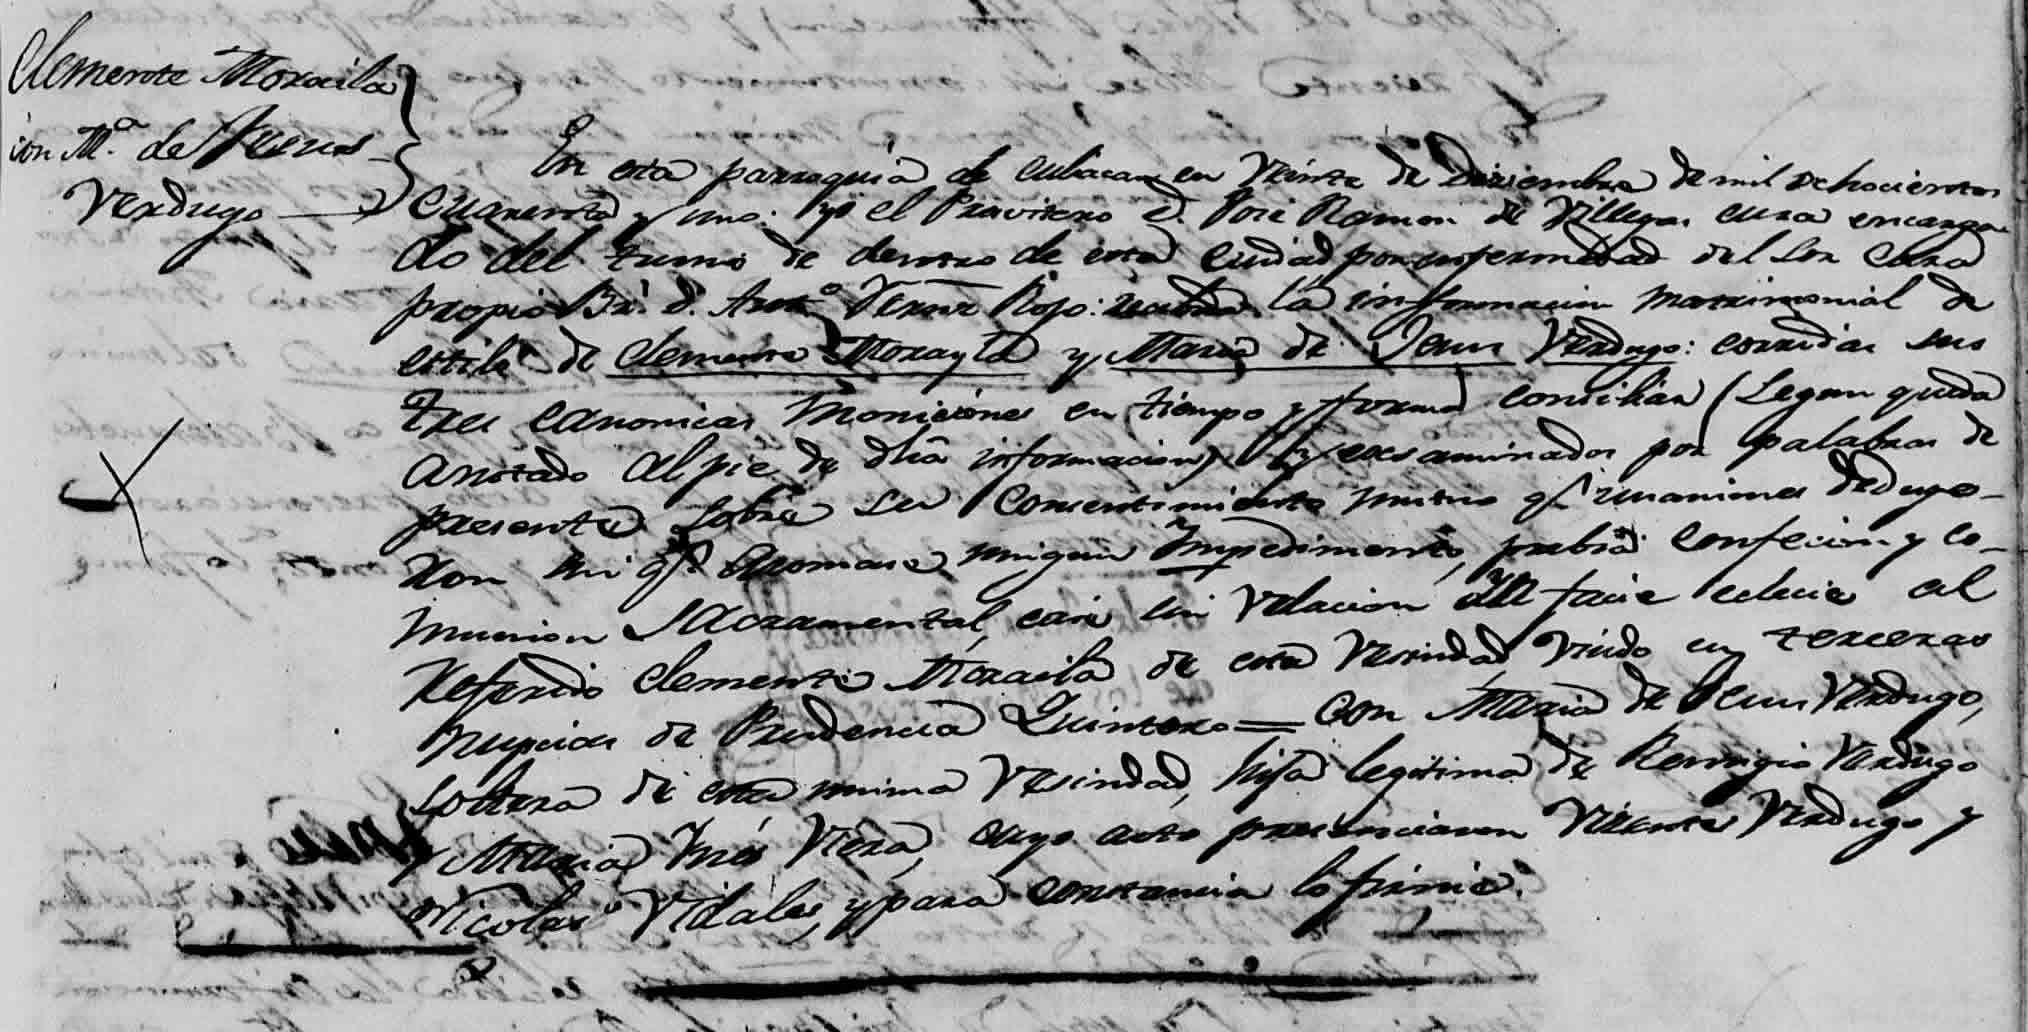 Marriage Record of Clemente Moraila and María de Jesús Verdugo from the Cathedral of San Miguel, Culiacán